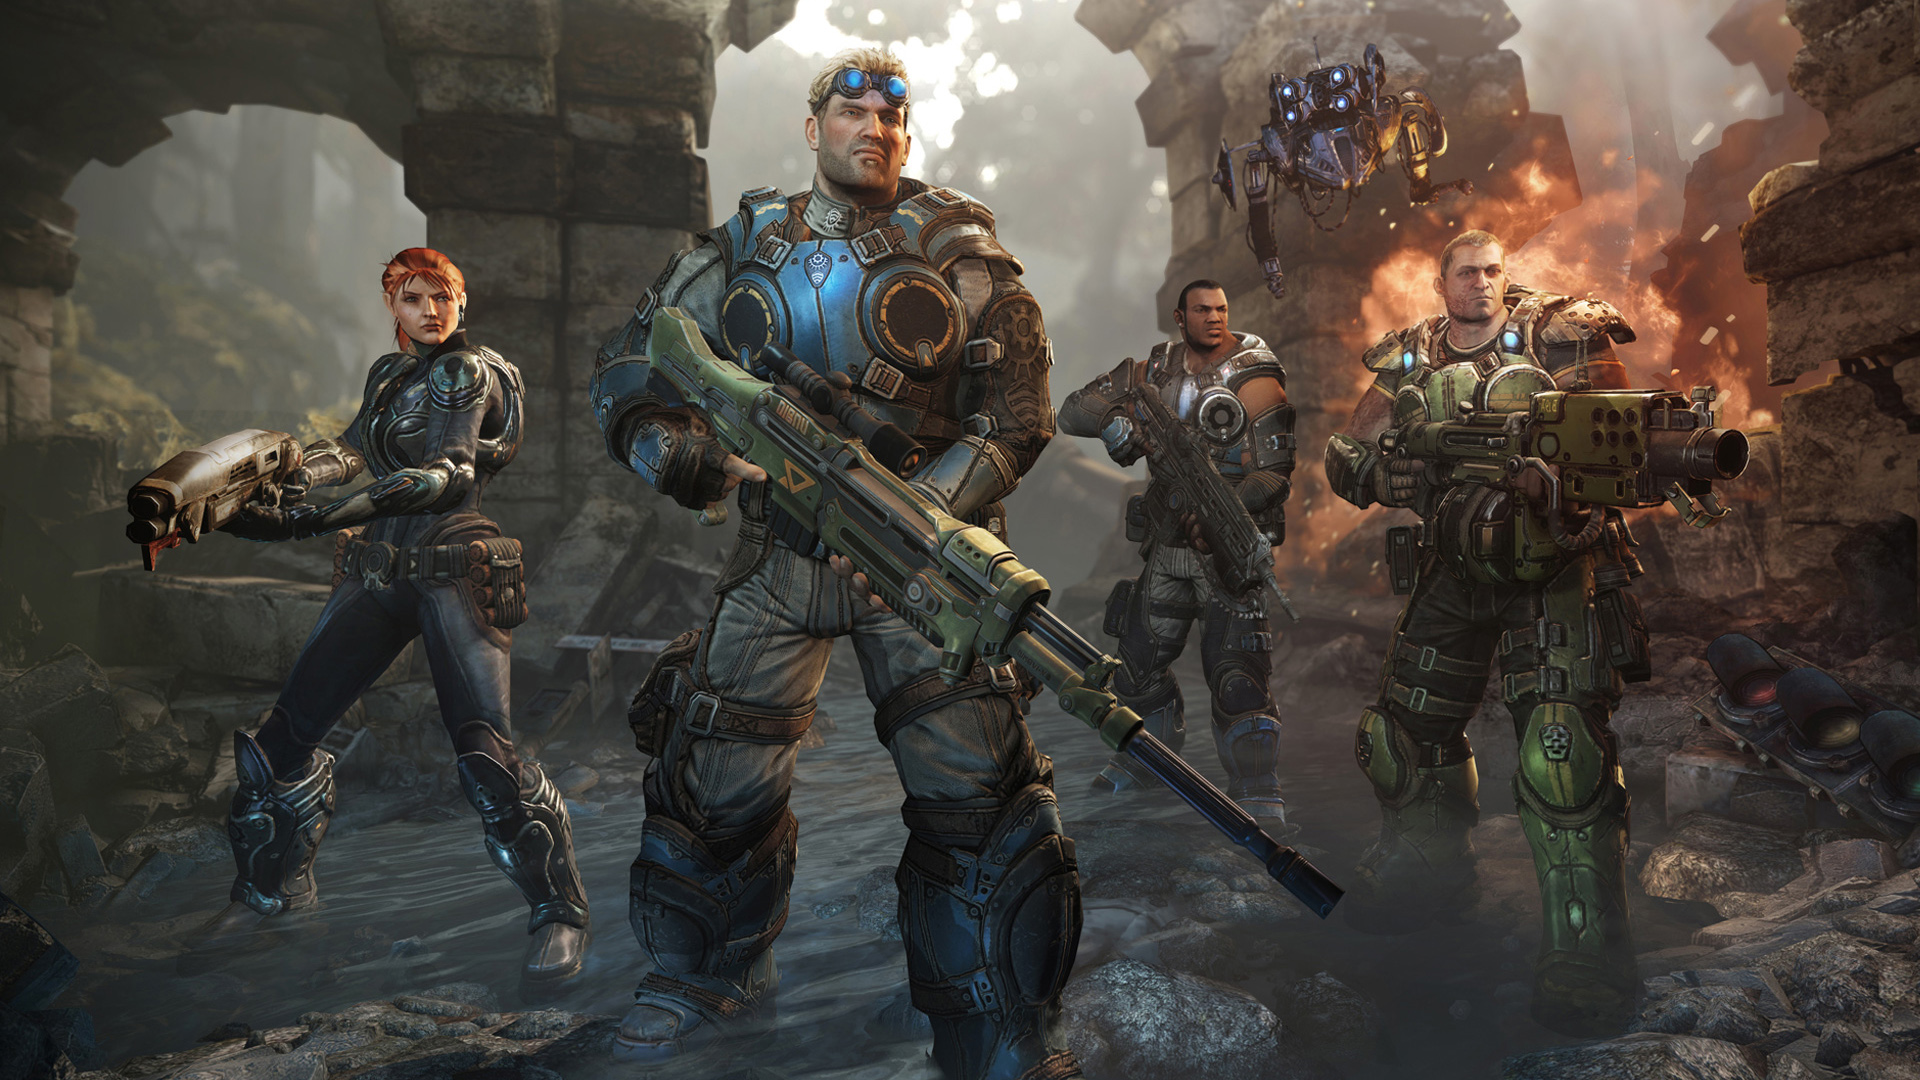 Gears of War is being made into a film by Universal Pictures.